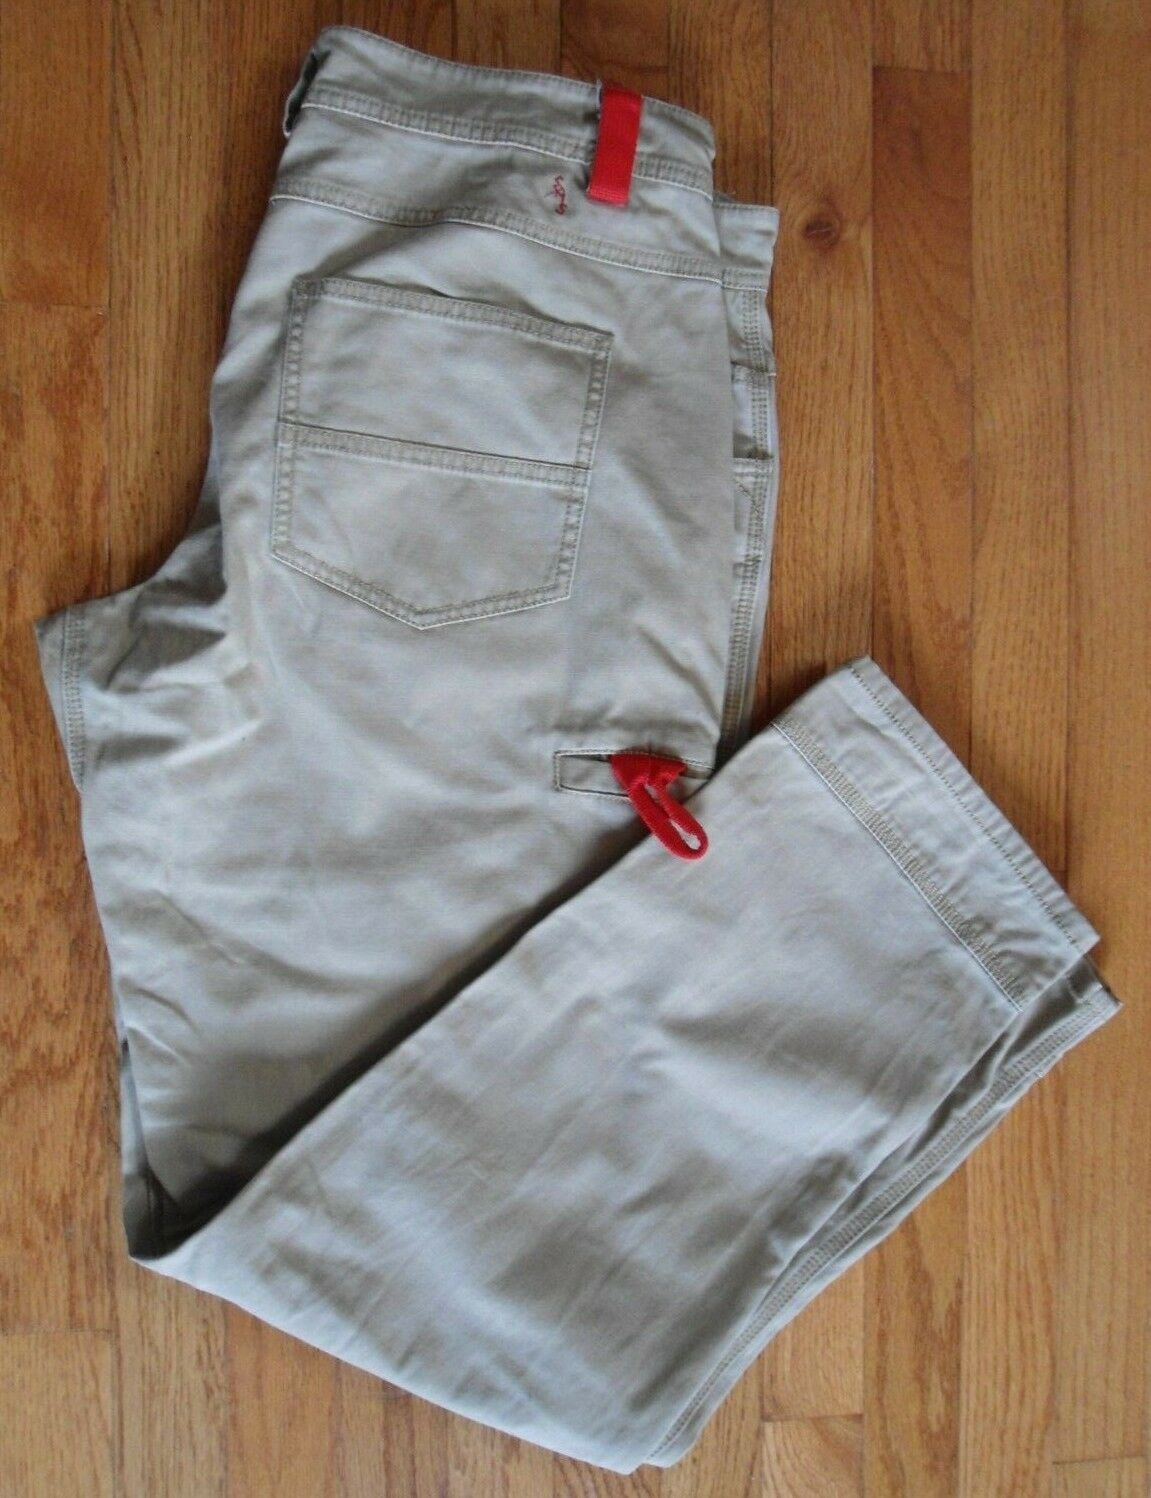 Eastern Mountain Sports Fencemender Classic Pants Size 36x32 Men's